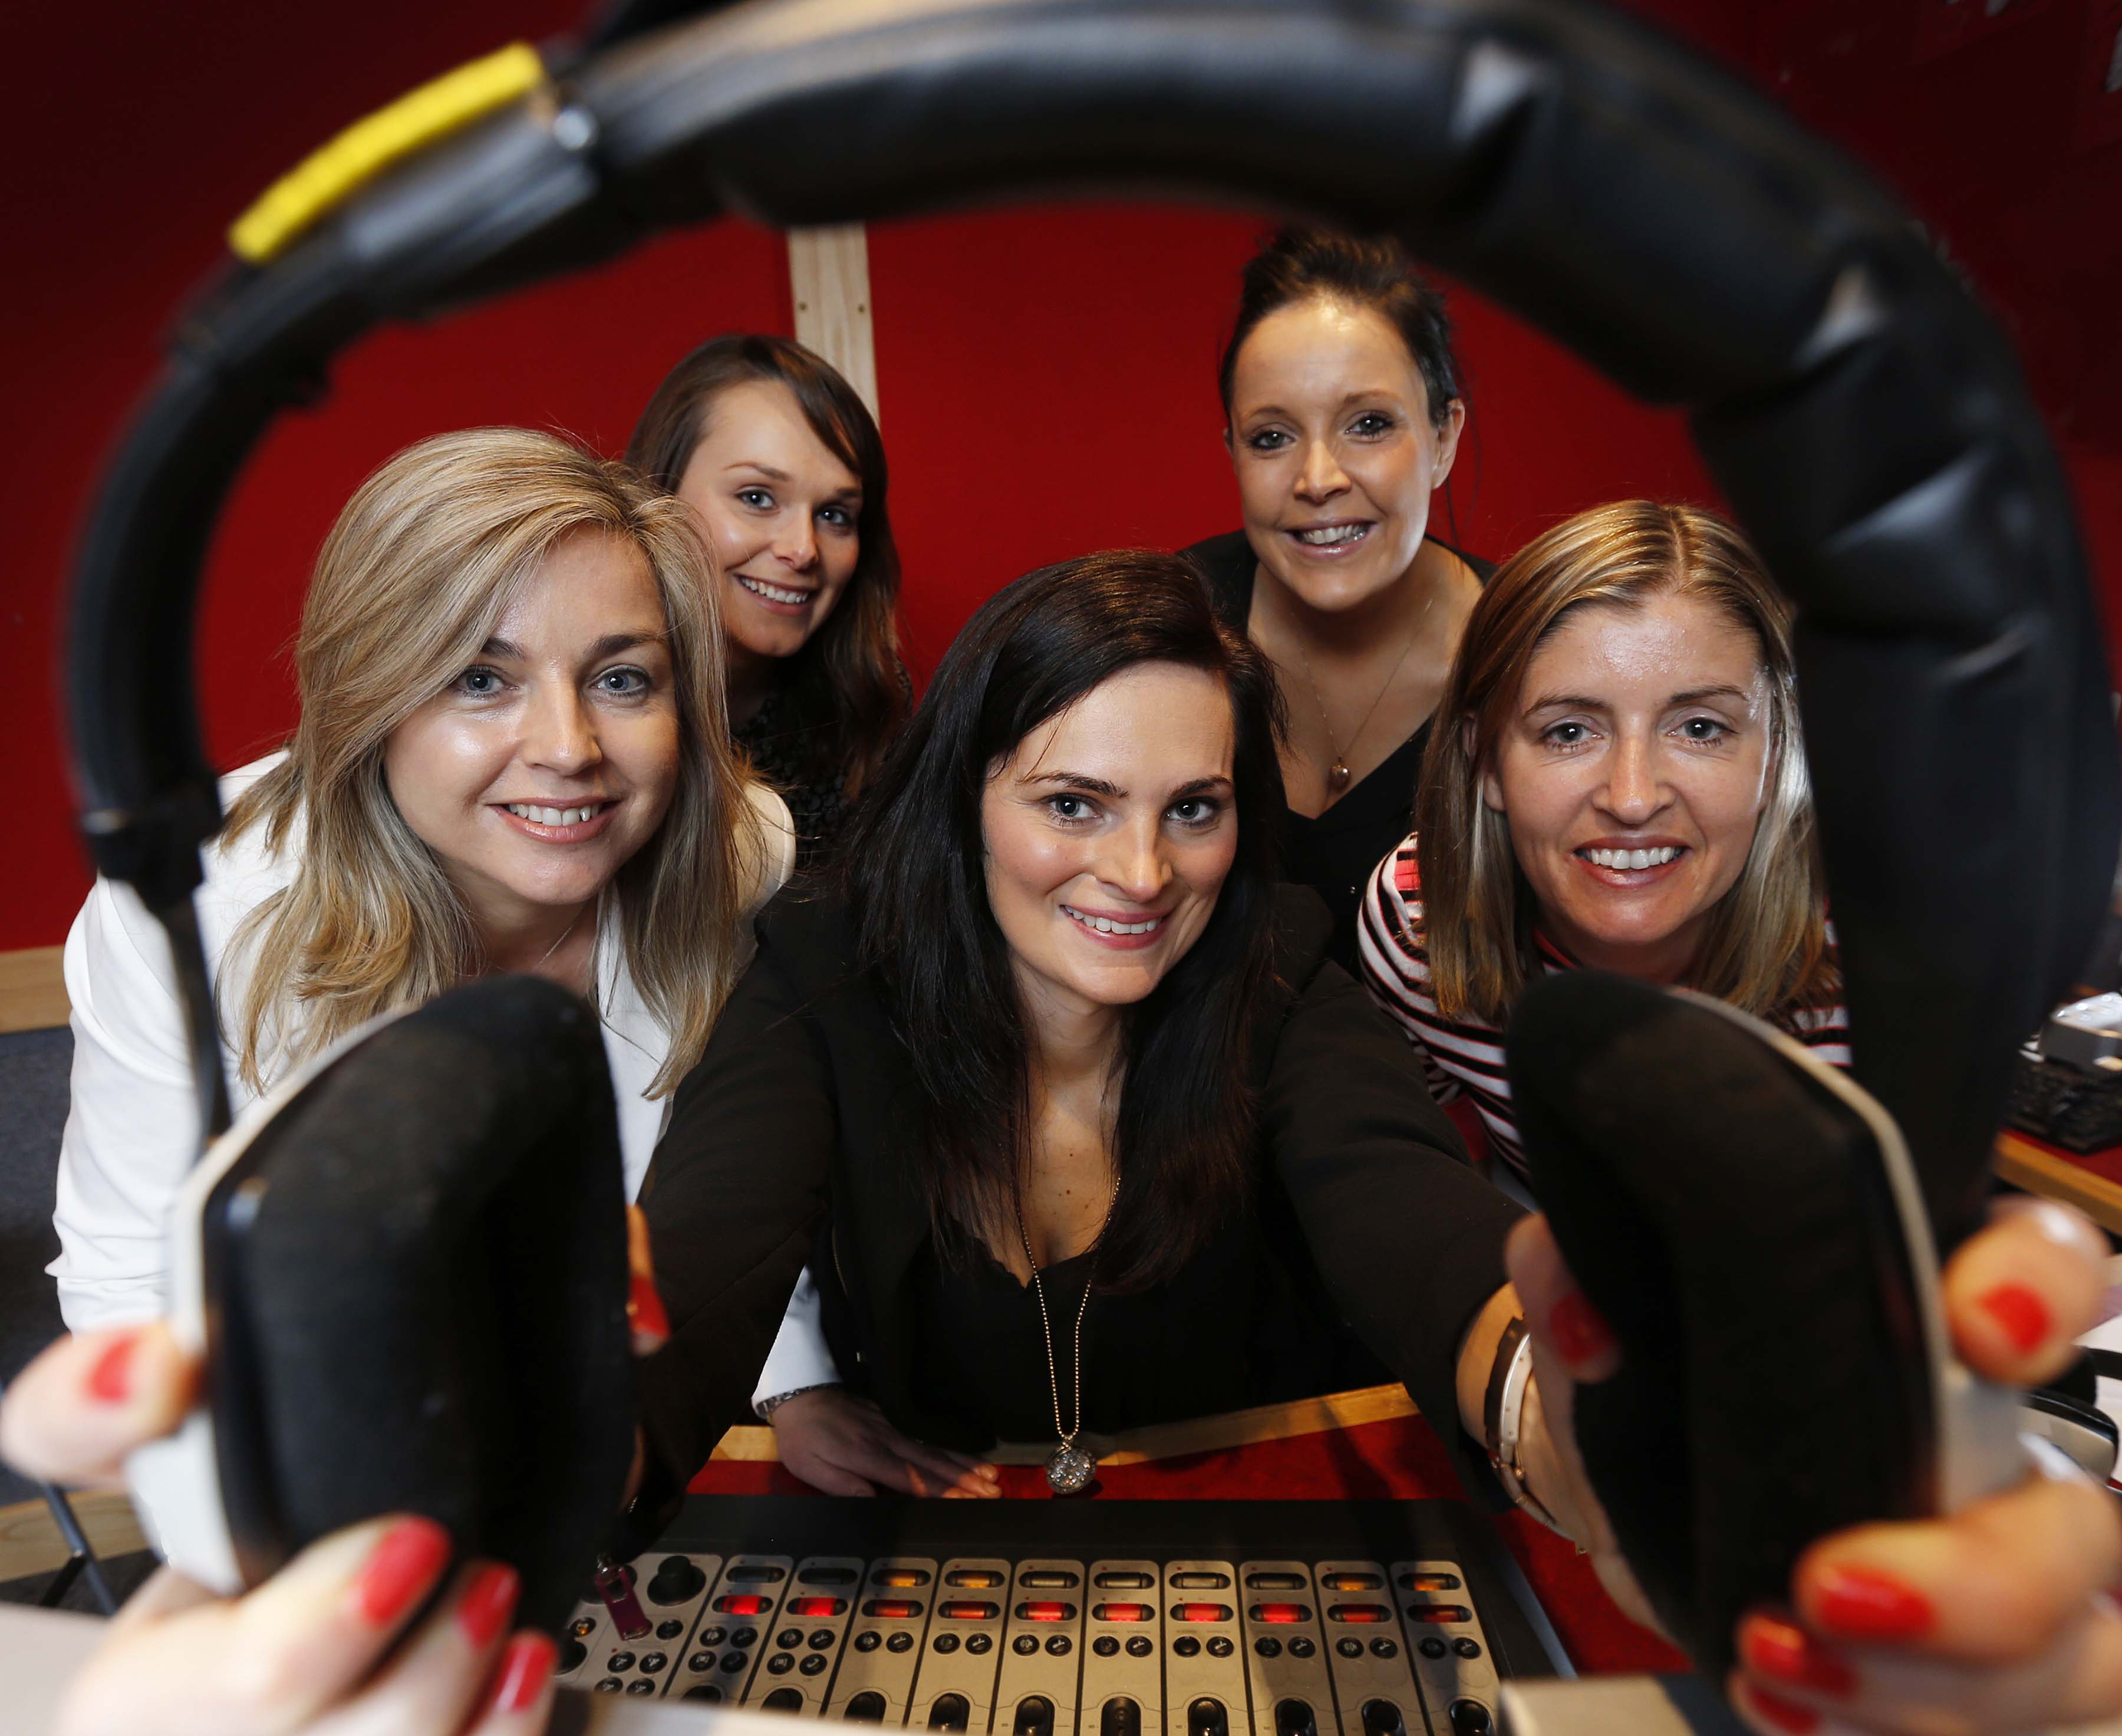 Pictured here are (front row L-R) Ciara O'Connor, Account Director at UTV Radio Solutions, Agnes Swaby, Marketing Manager at DoneDeal, Jill Downey, Managing Partner at Livewire (back row L-R) Ellen McCarthy, Client Associate at Starcom, Gráinne Ryan, Creative Solutions Specialist at UTV Radio Solutions. DoneDeal has announced that it will sponsor weather bulletins across four of UTV Radio Solution's market leading urban stations;  Dublin's FM104, Cork's 96FM & C103FM, Galway Bay FM, and WLR FM in Waterford.  Pic Robbie Reynolds